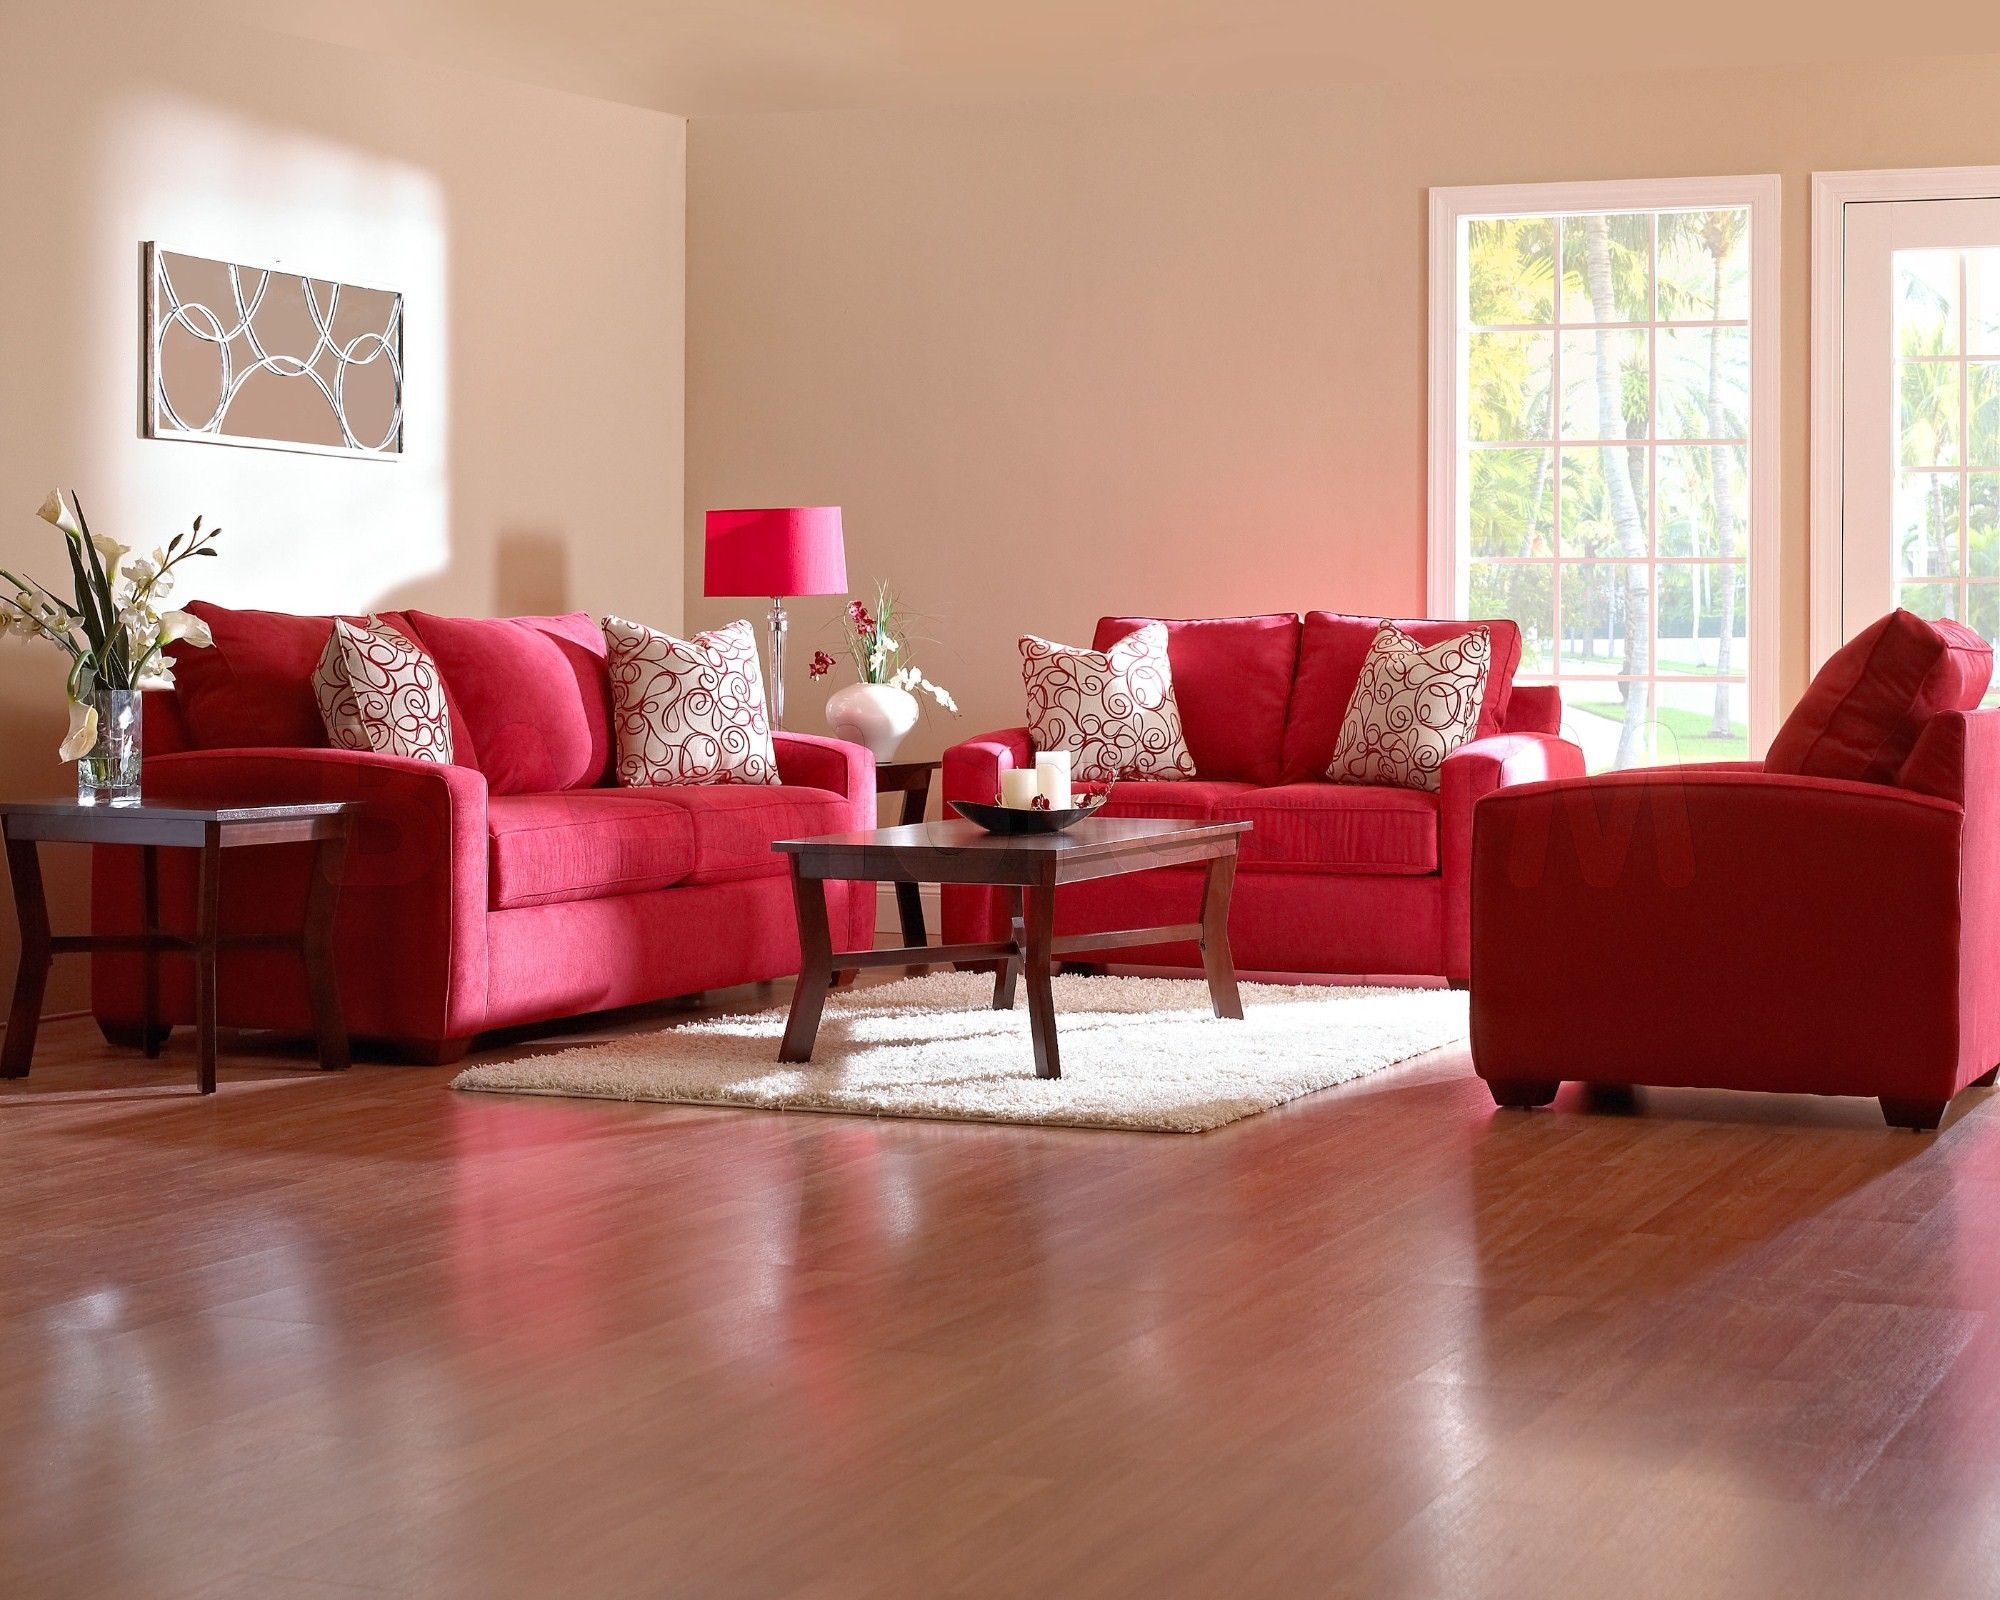 Enchanting Living Room Interior Sets with White Wall Paint feat Wooden Floor and Two Fabric Red